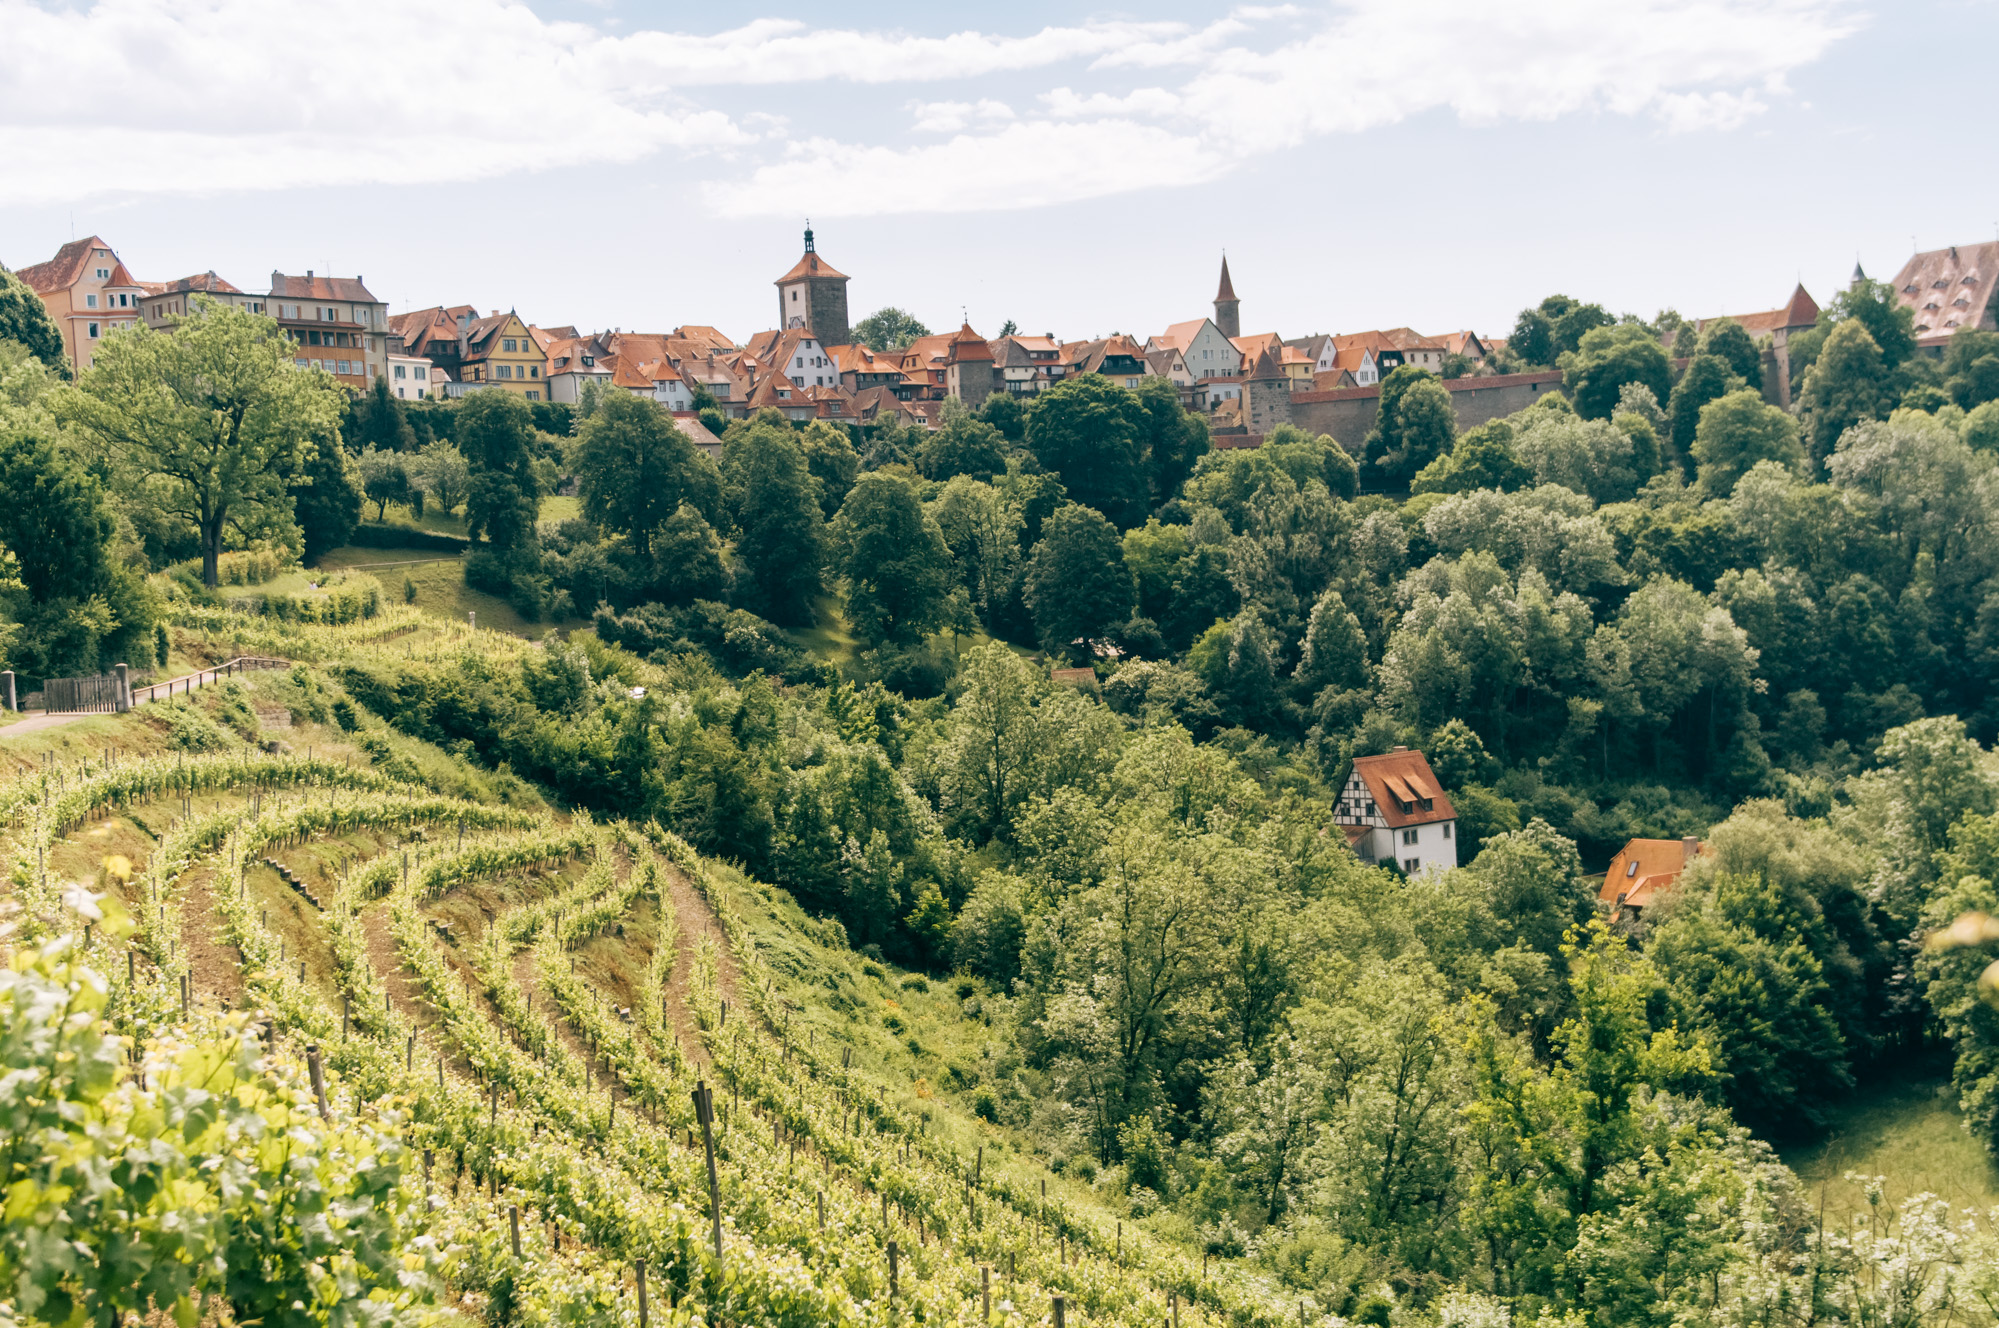 rothenburg-xavier-manhing-27.jpg